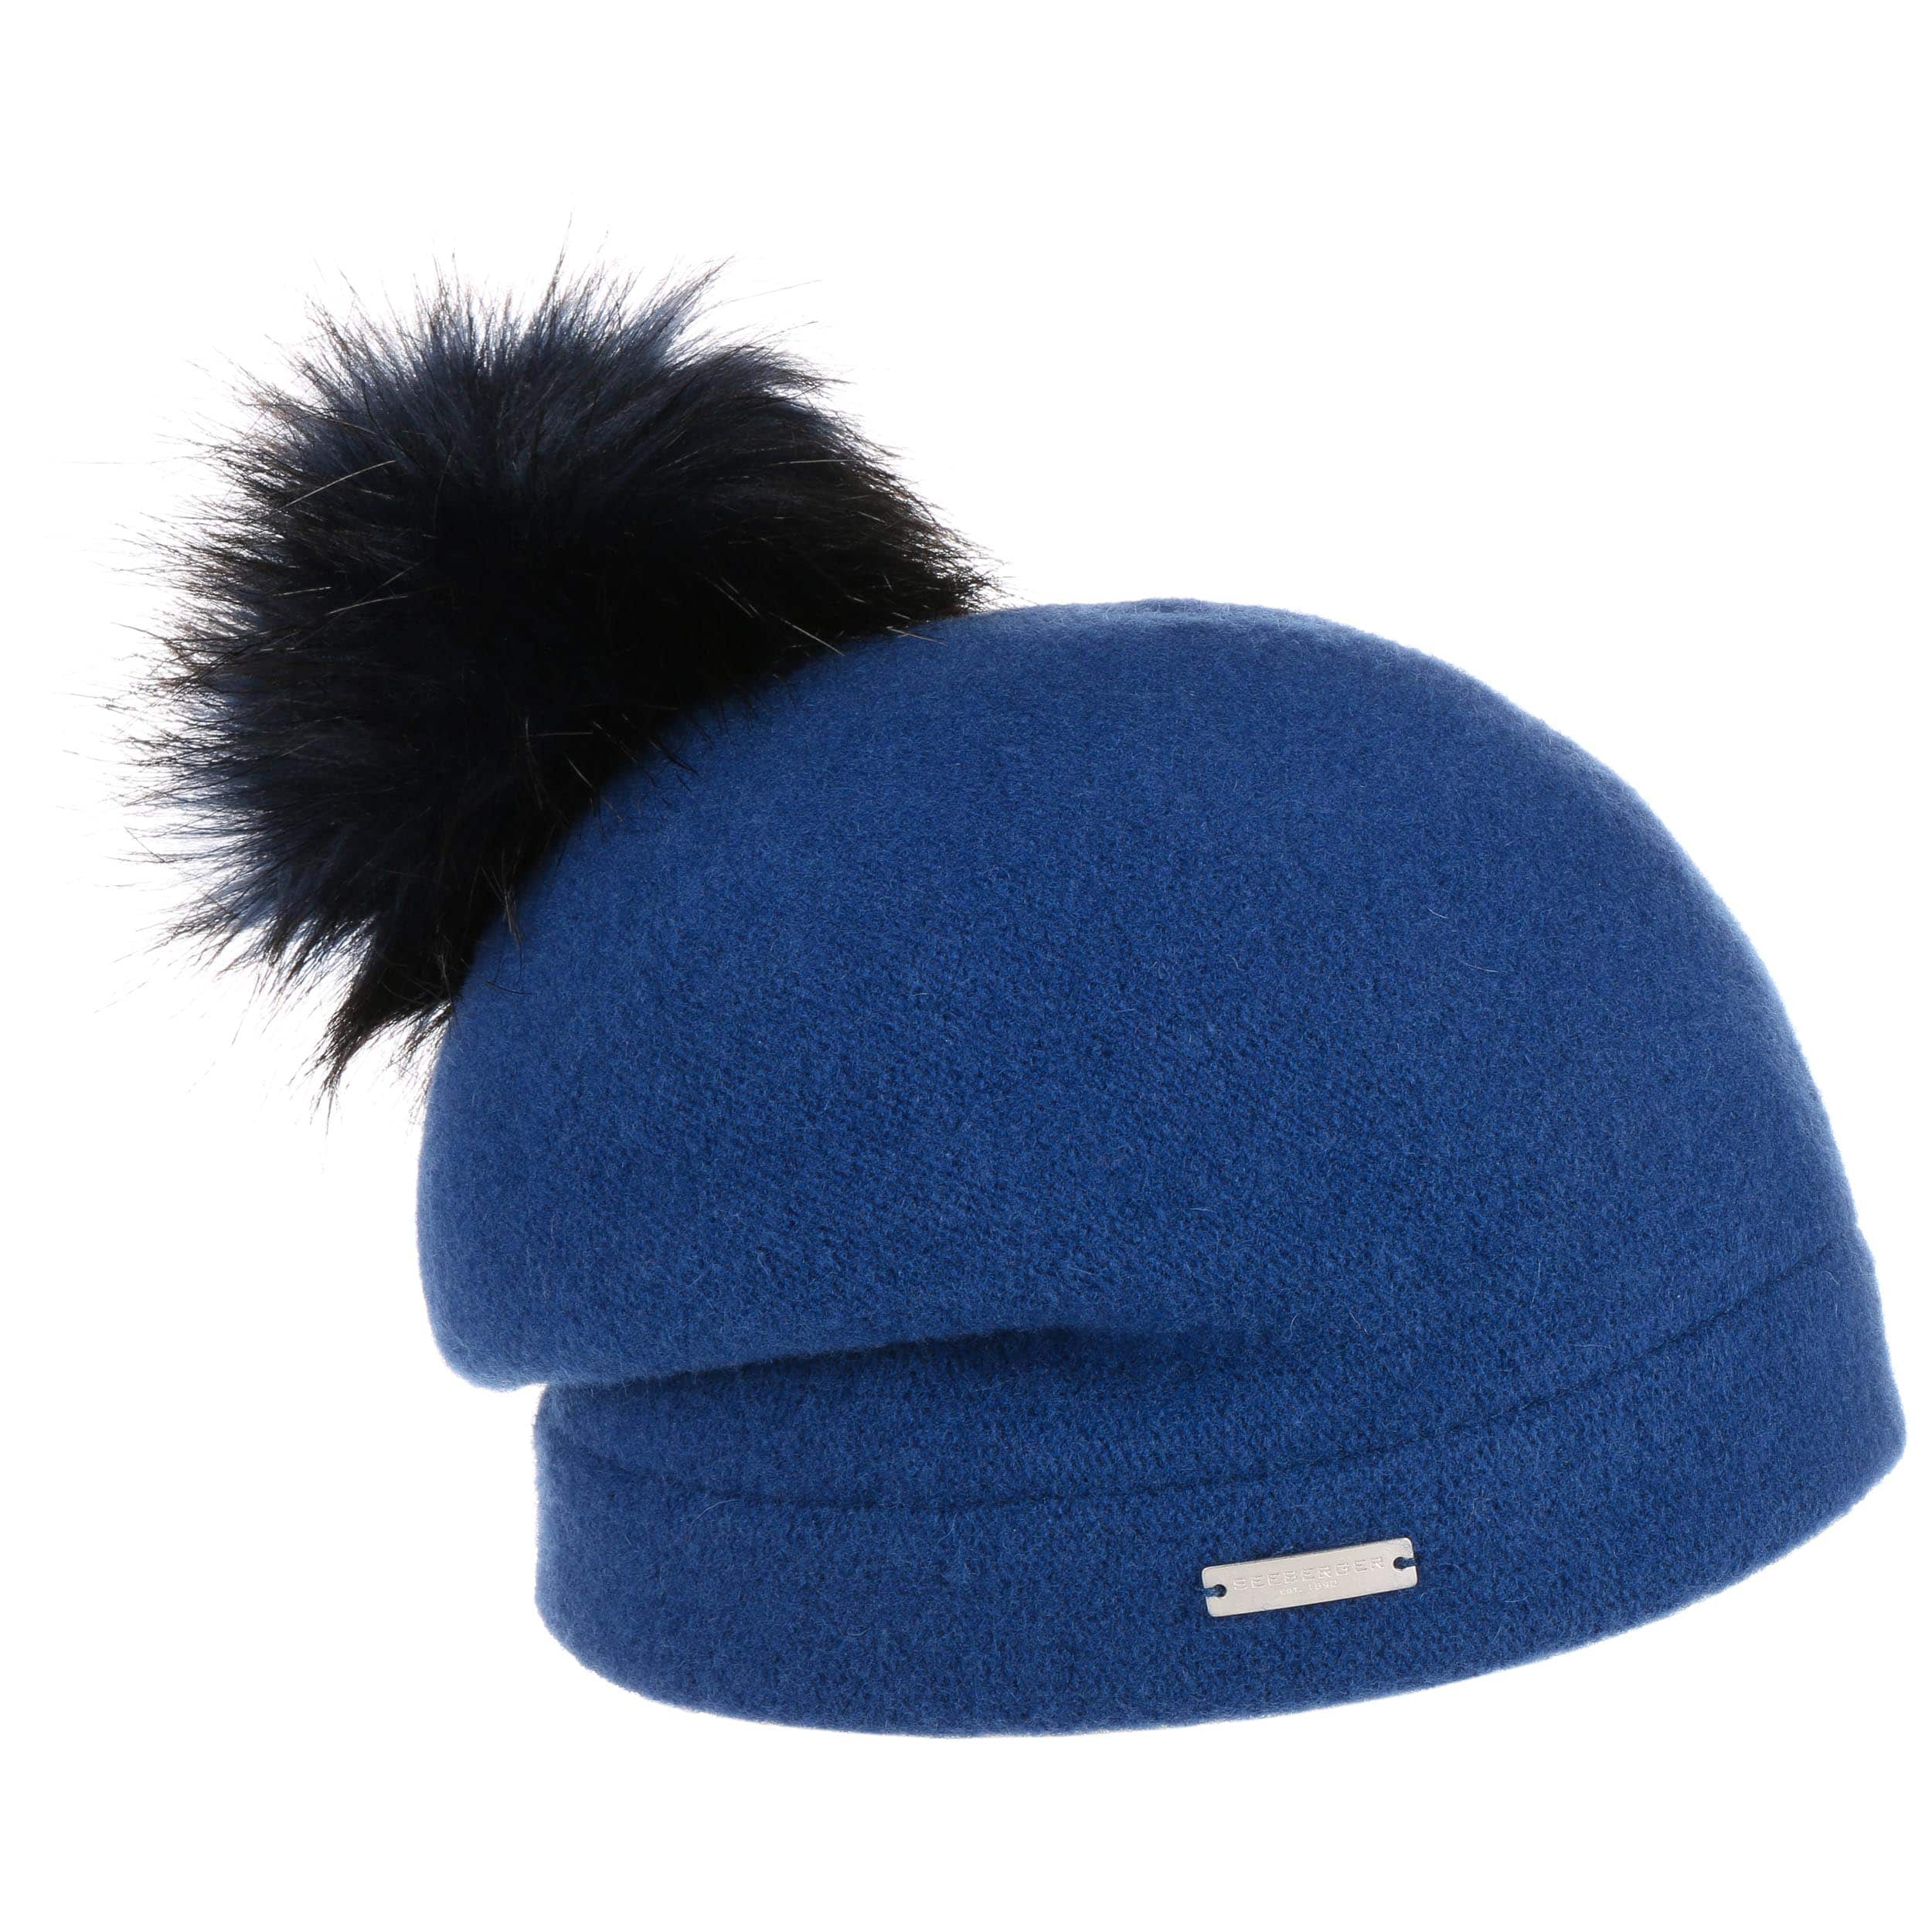 86ac705d777 ... Tamisa Milled Wool Hat by Seeberger - bordeaux 5 ...